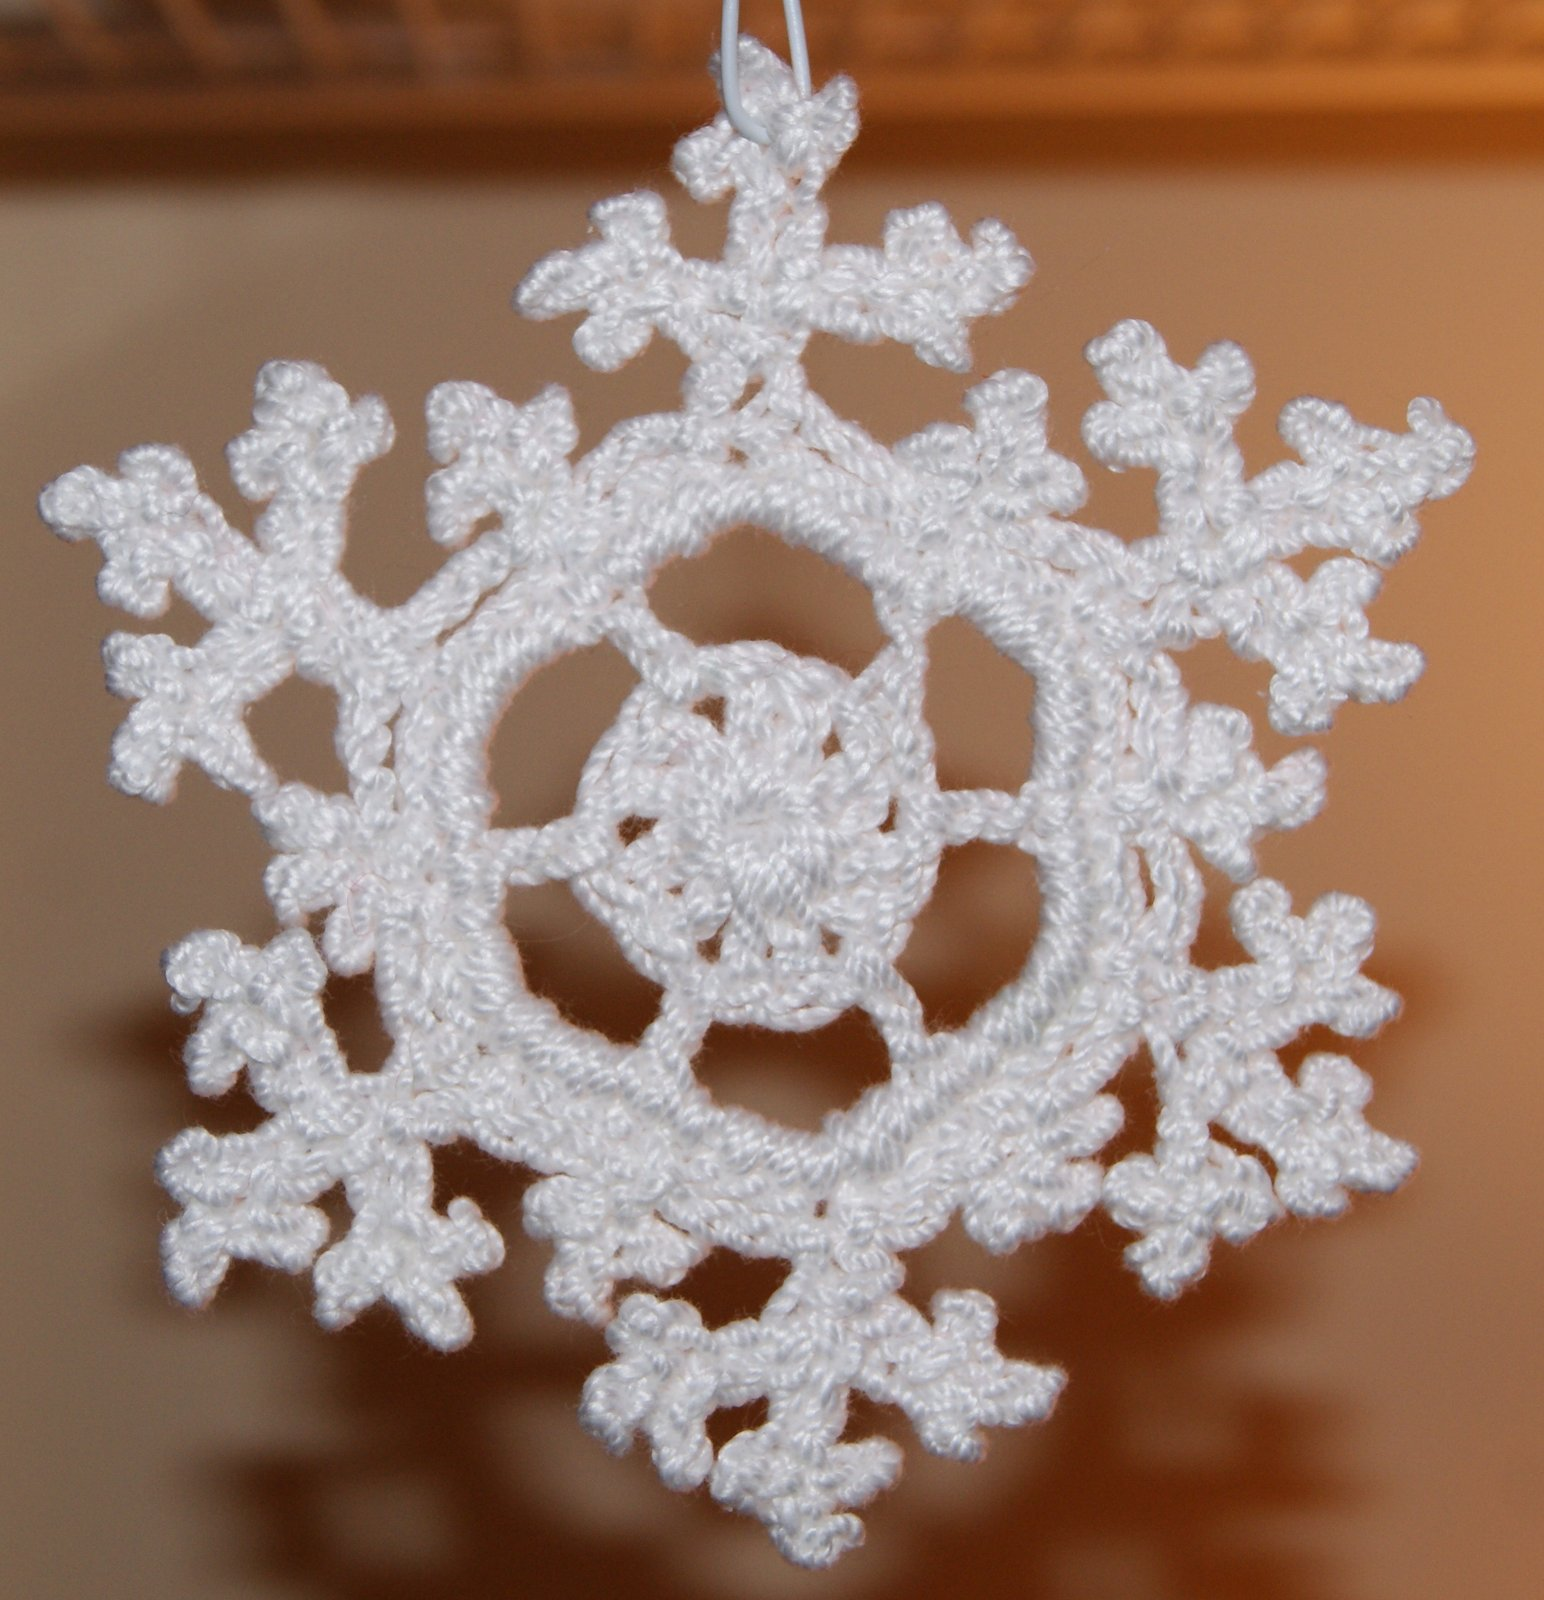 crochet snowflakes | Stitch4eveR